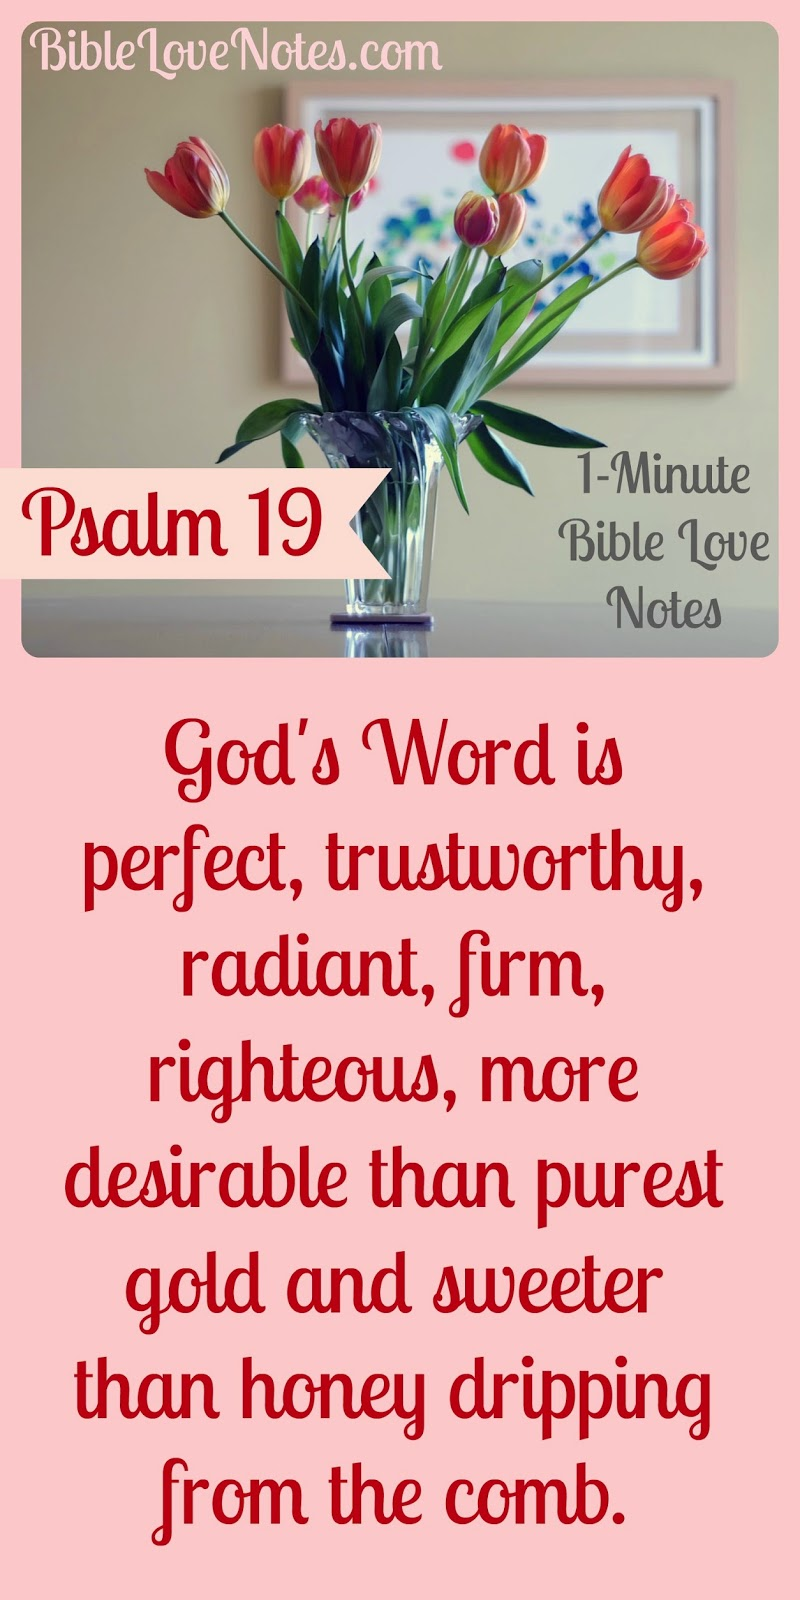 God's perfect Word, Psalm 19